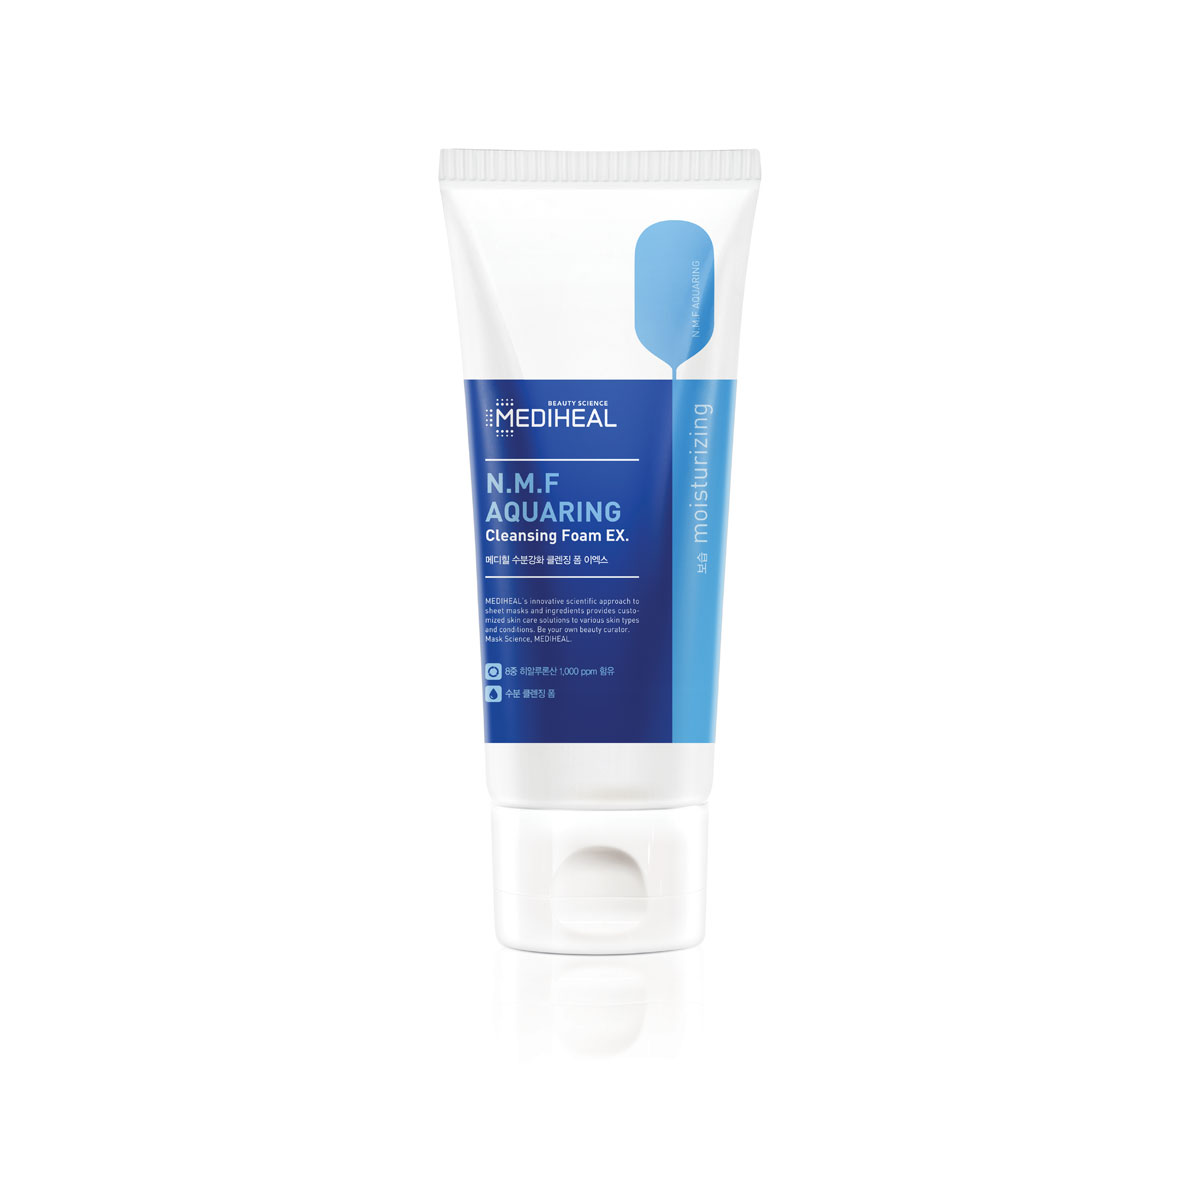 Mediheal N.M.F Aquaring Cleansing Foam 170 ml